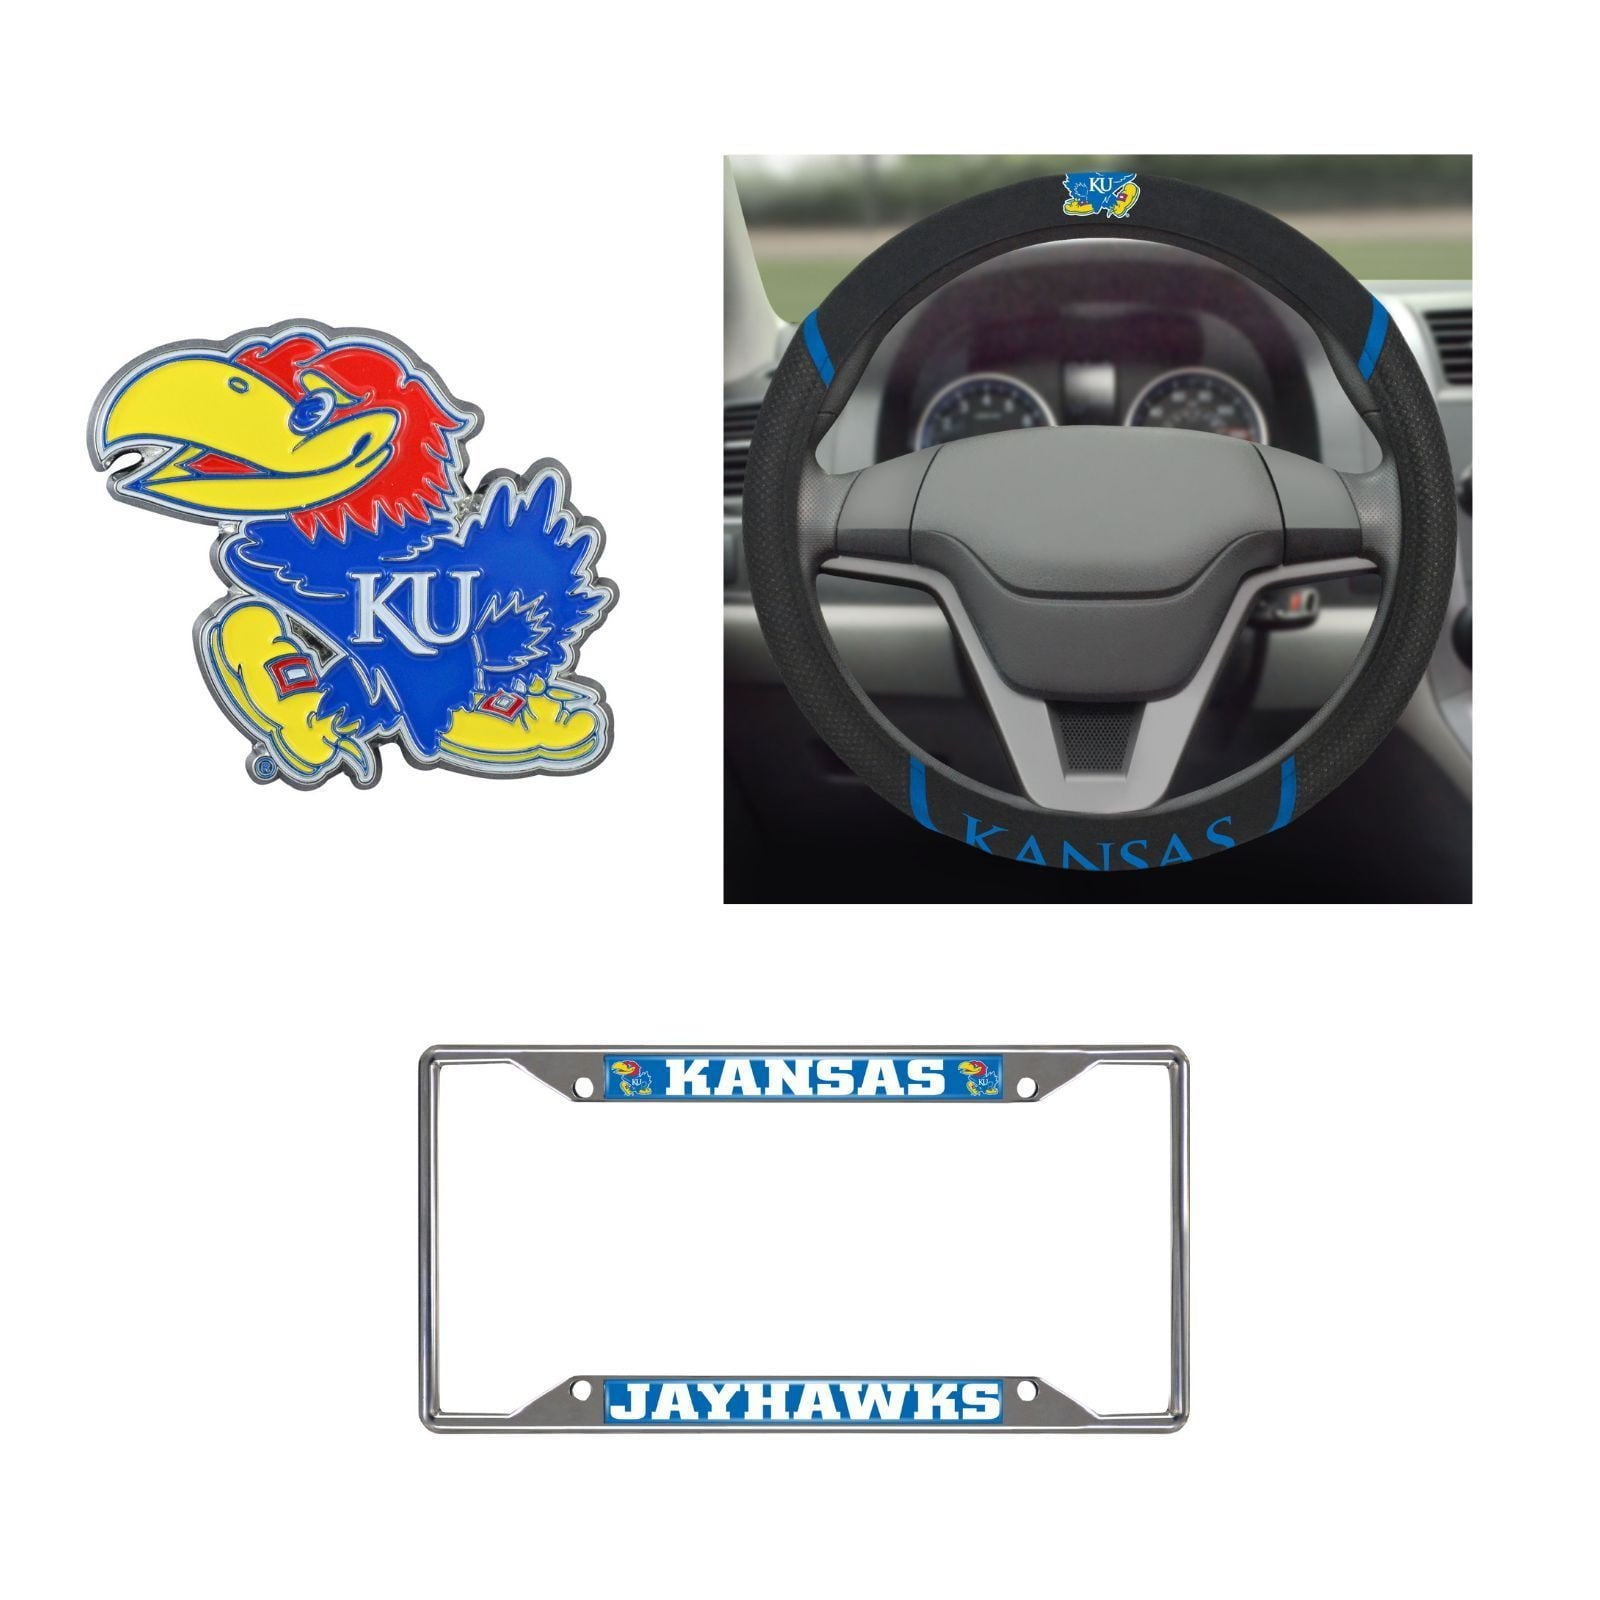 Kansas Jayhawks Steering Wheel Cover, License Plate Frame, 3D Color Emblem